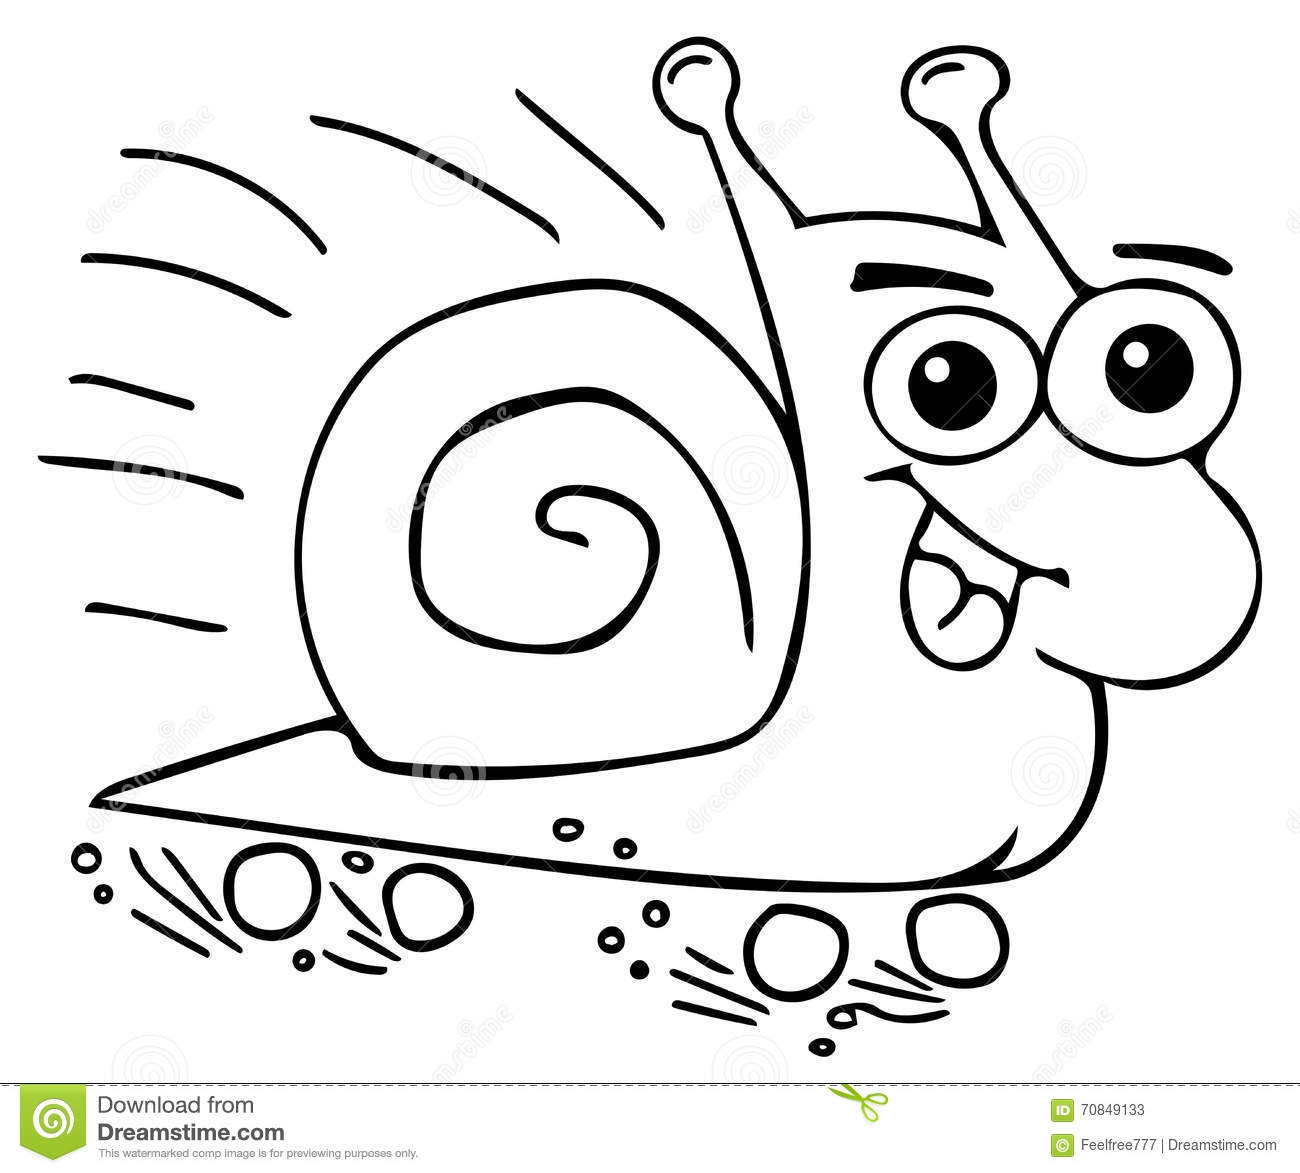 Funny snail coloring pages stock illustration. Illustration of dream ...